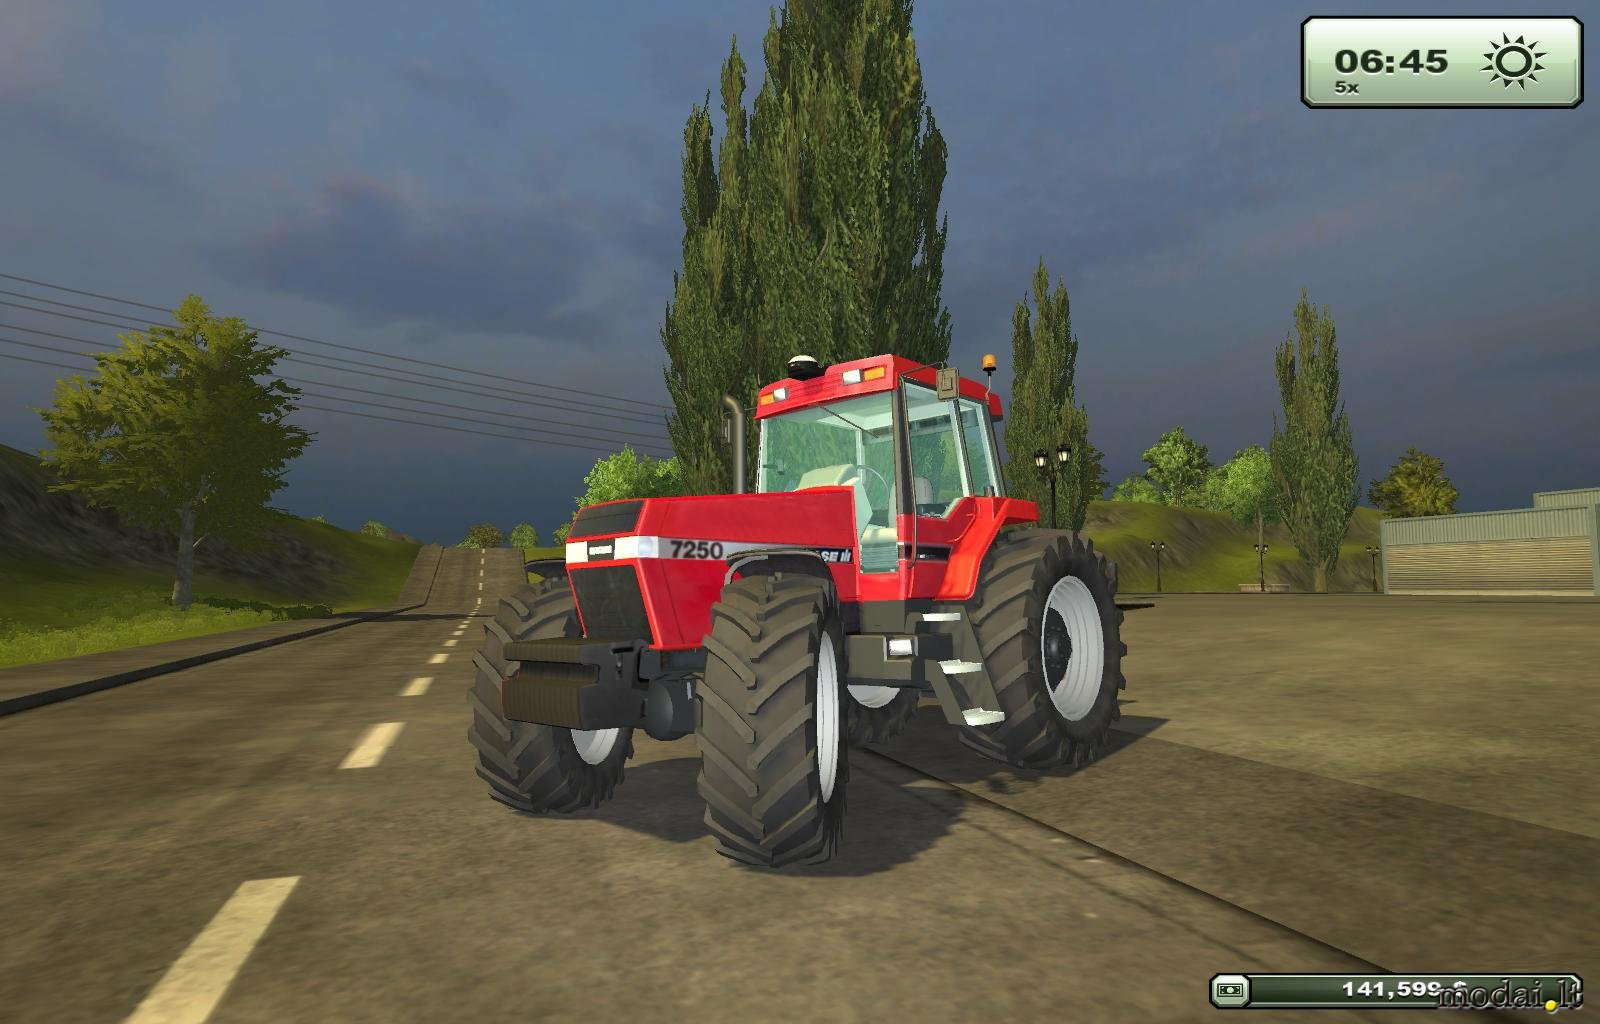 Categories: Farming Simulator 2013 › Tractors › Case